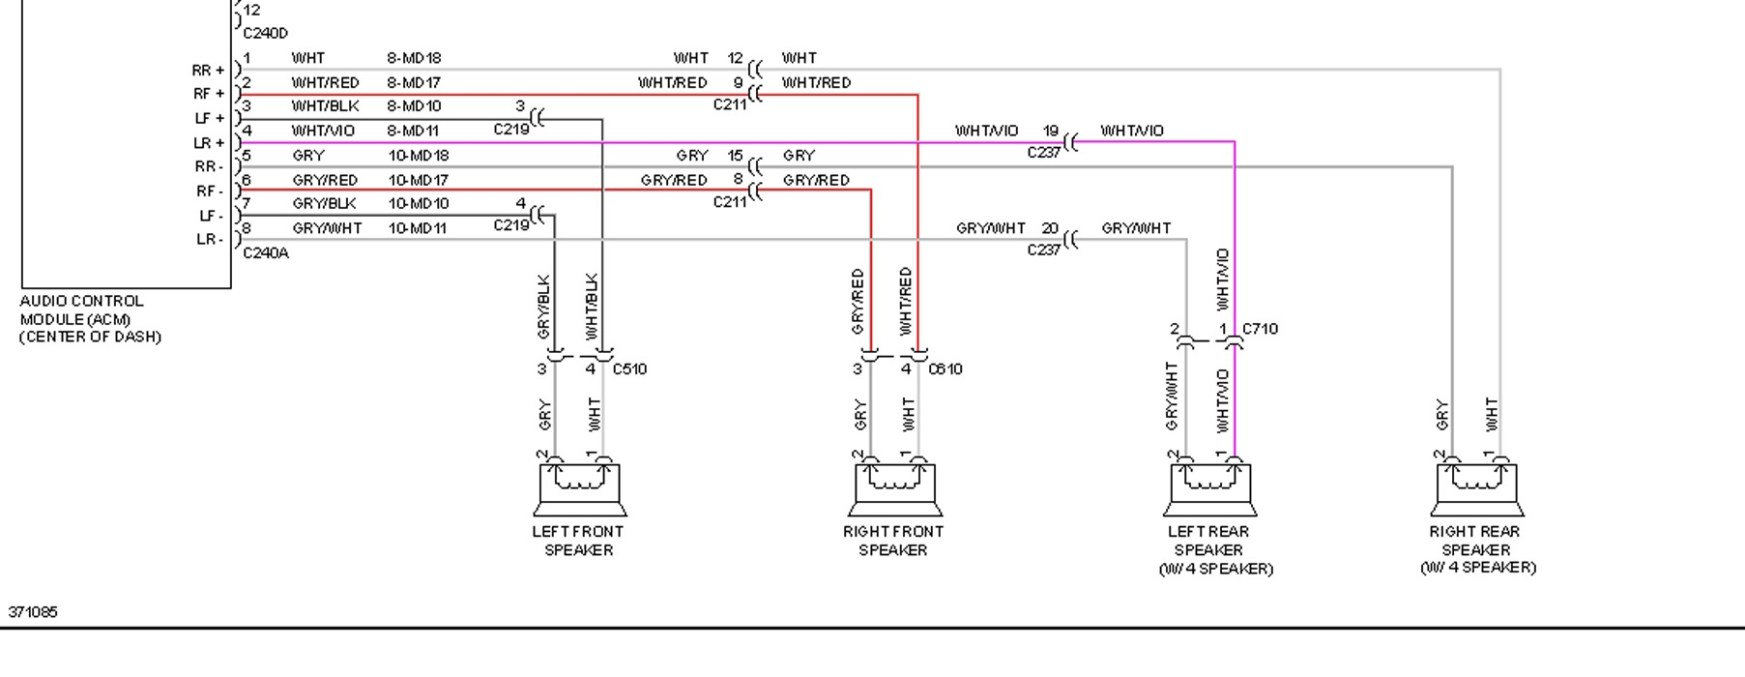 ford focus stereo wiring diagram wiring diagram 1999 ford explorer stereo wire colors diagram